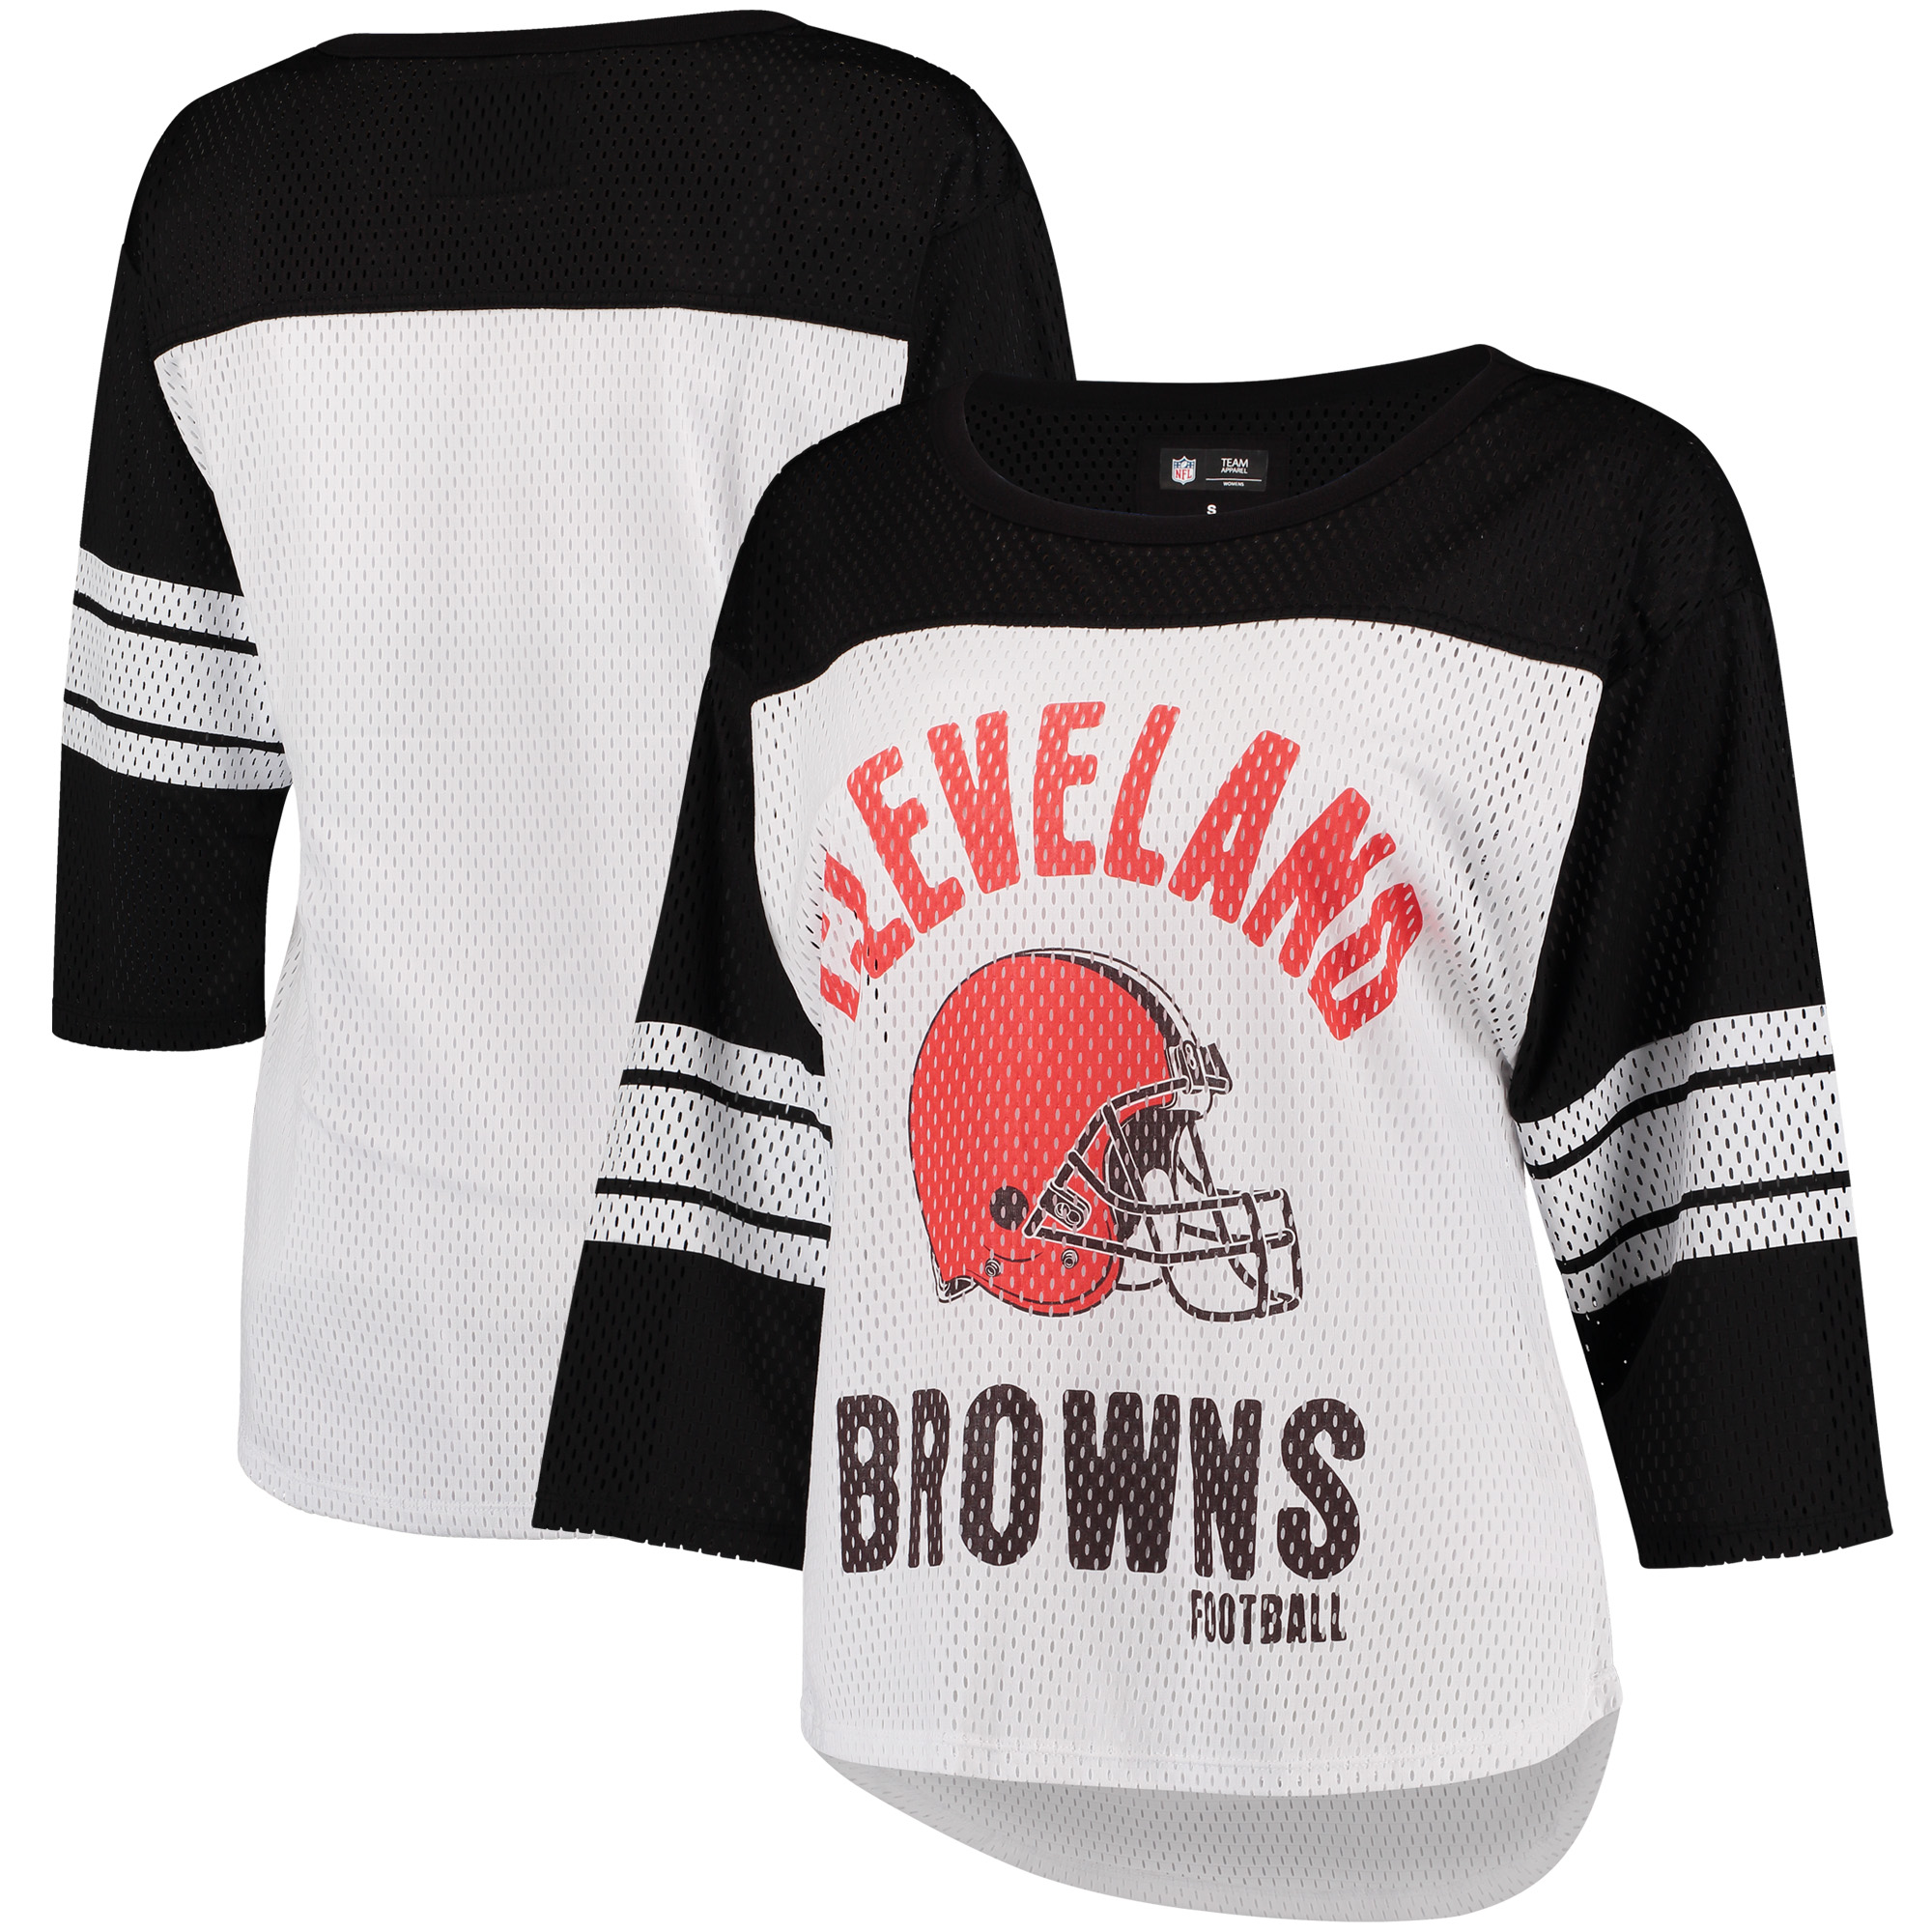 Cleveland Browns G-III 4Her by Carl Banks Women's First Team Three-Quarter Sleeve Mesh T-Shirt - White/Black